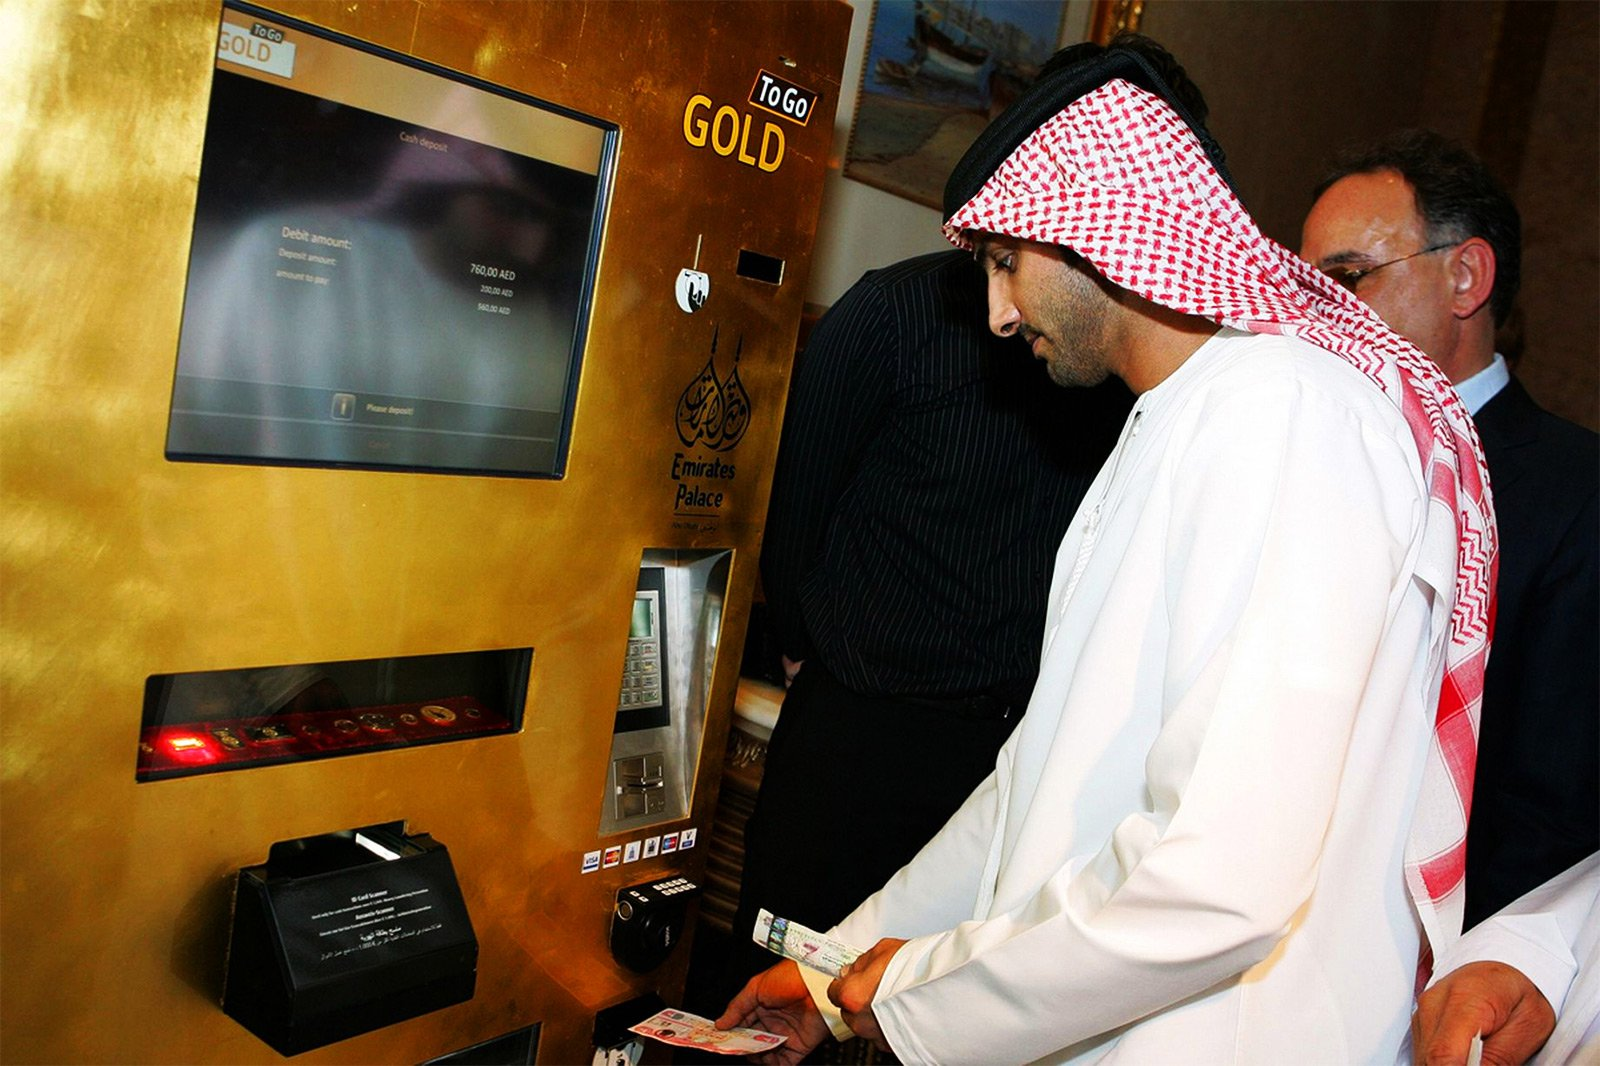 How to get gold from an ATM in Abu Dhabi